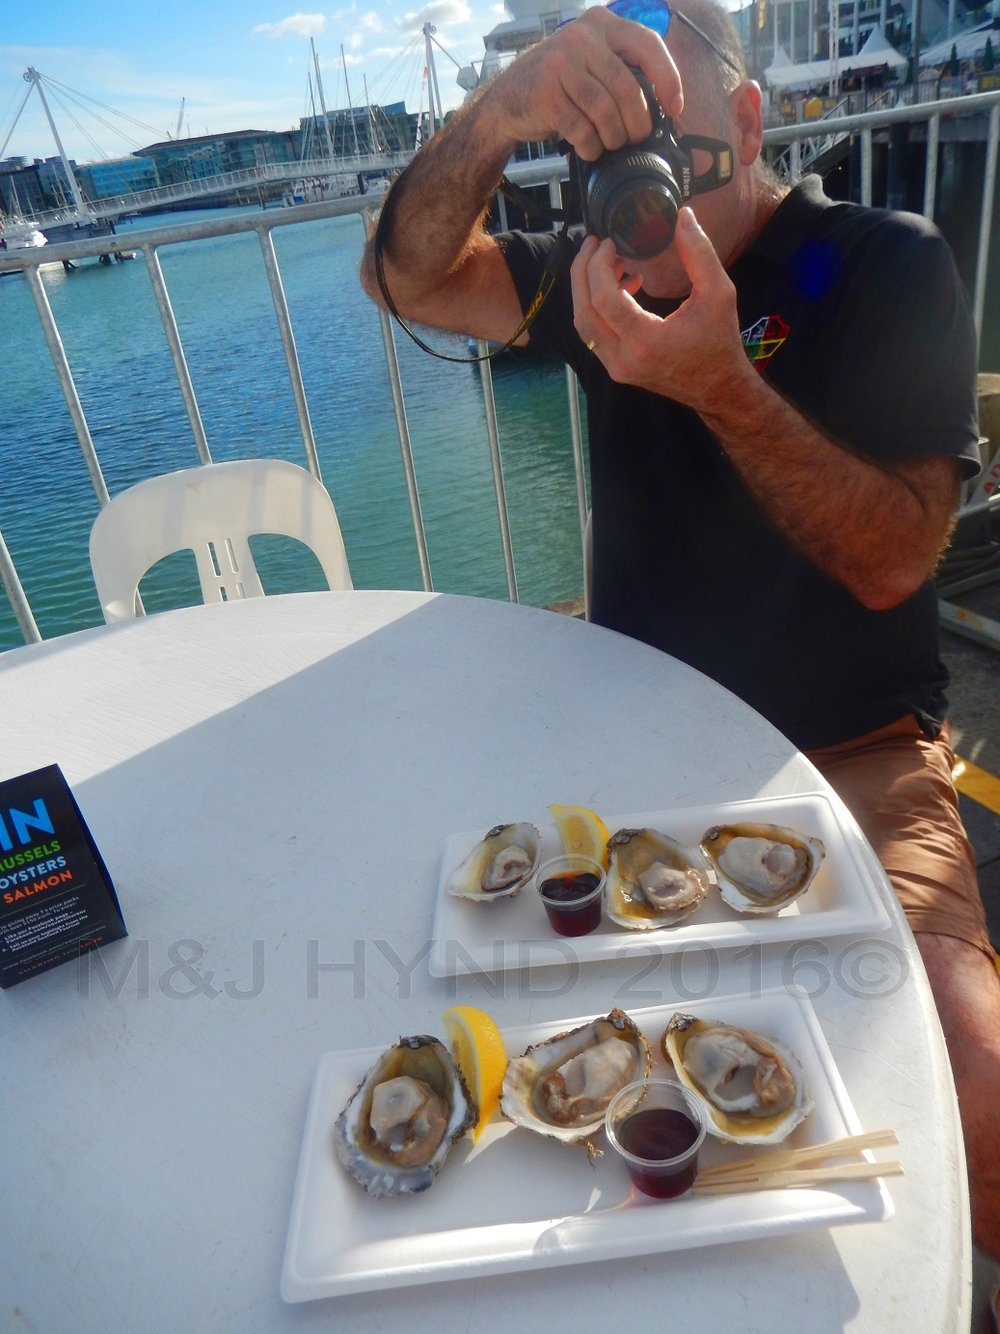 Oysters, Seafood Festival, Auckland, NZ